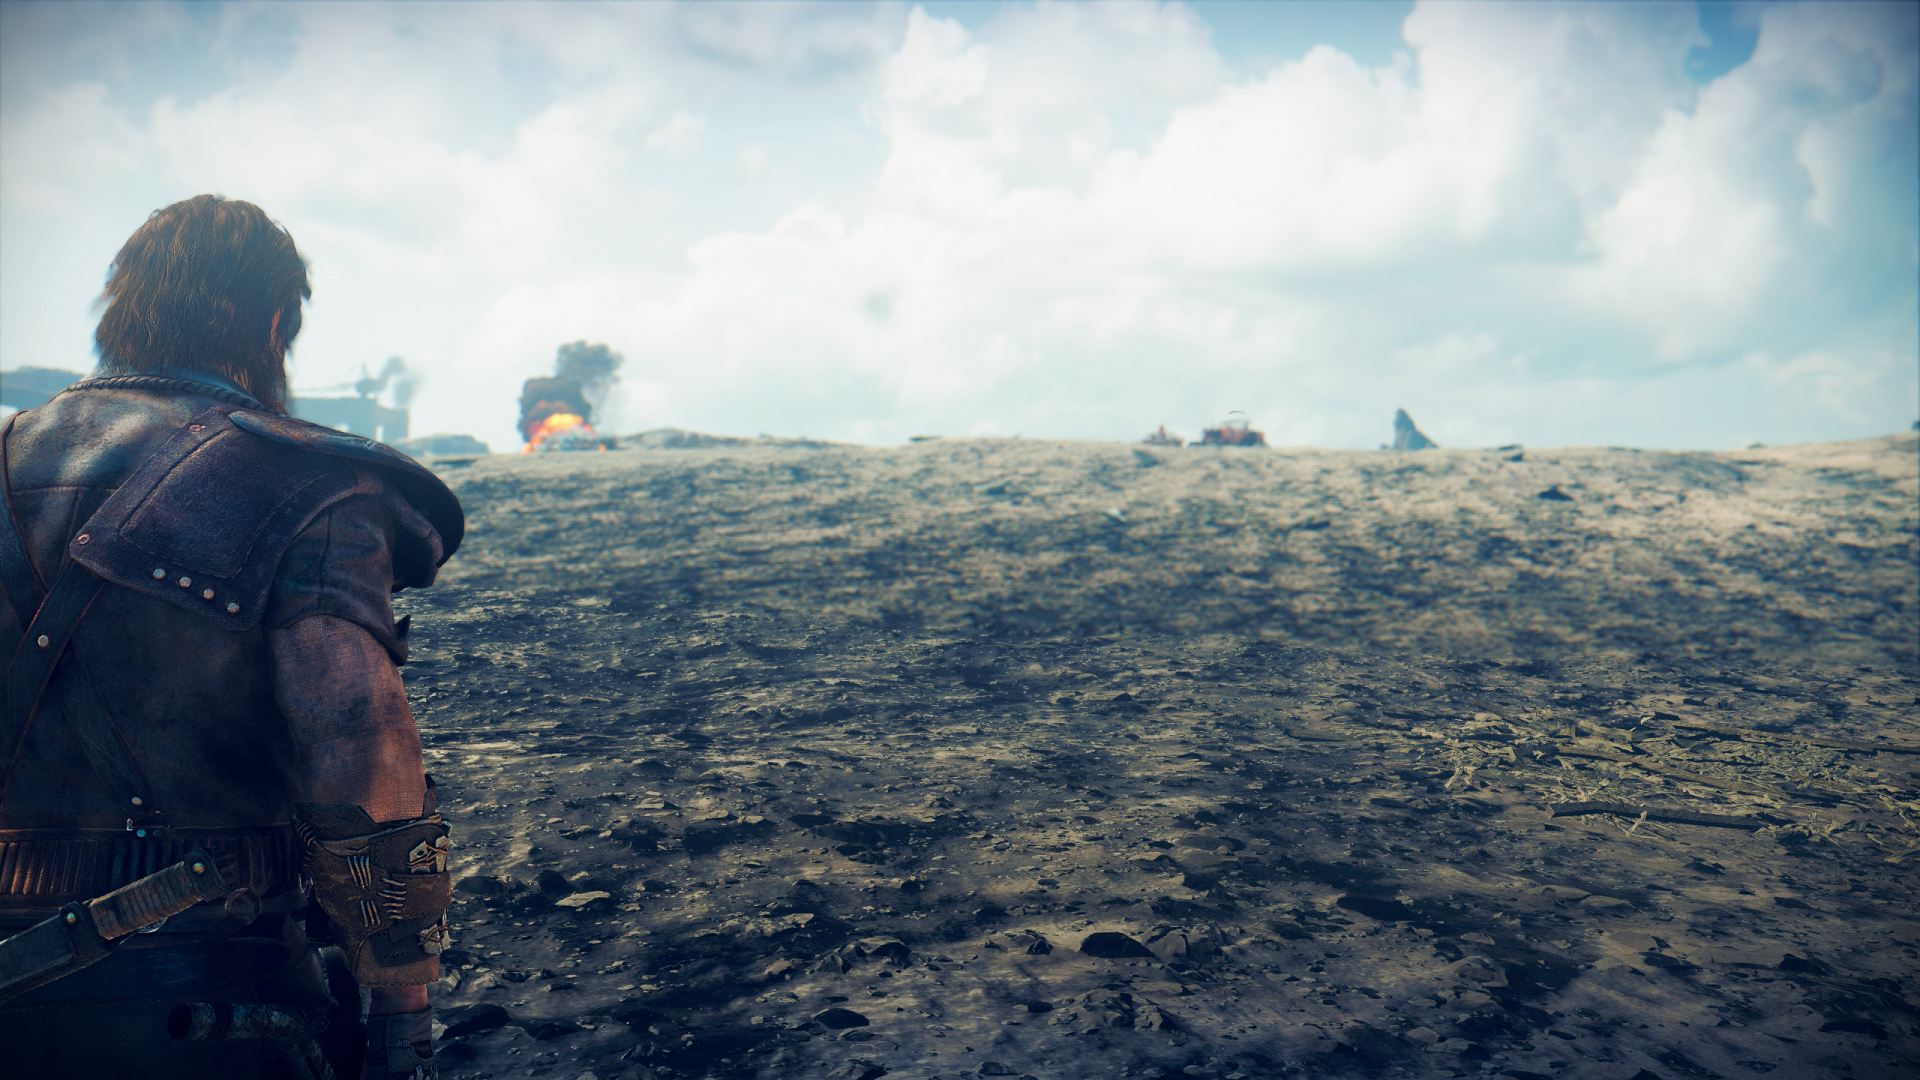 madmax2015-09-0200-52mto8d.png